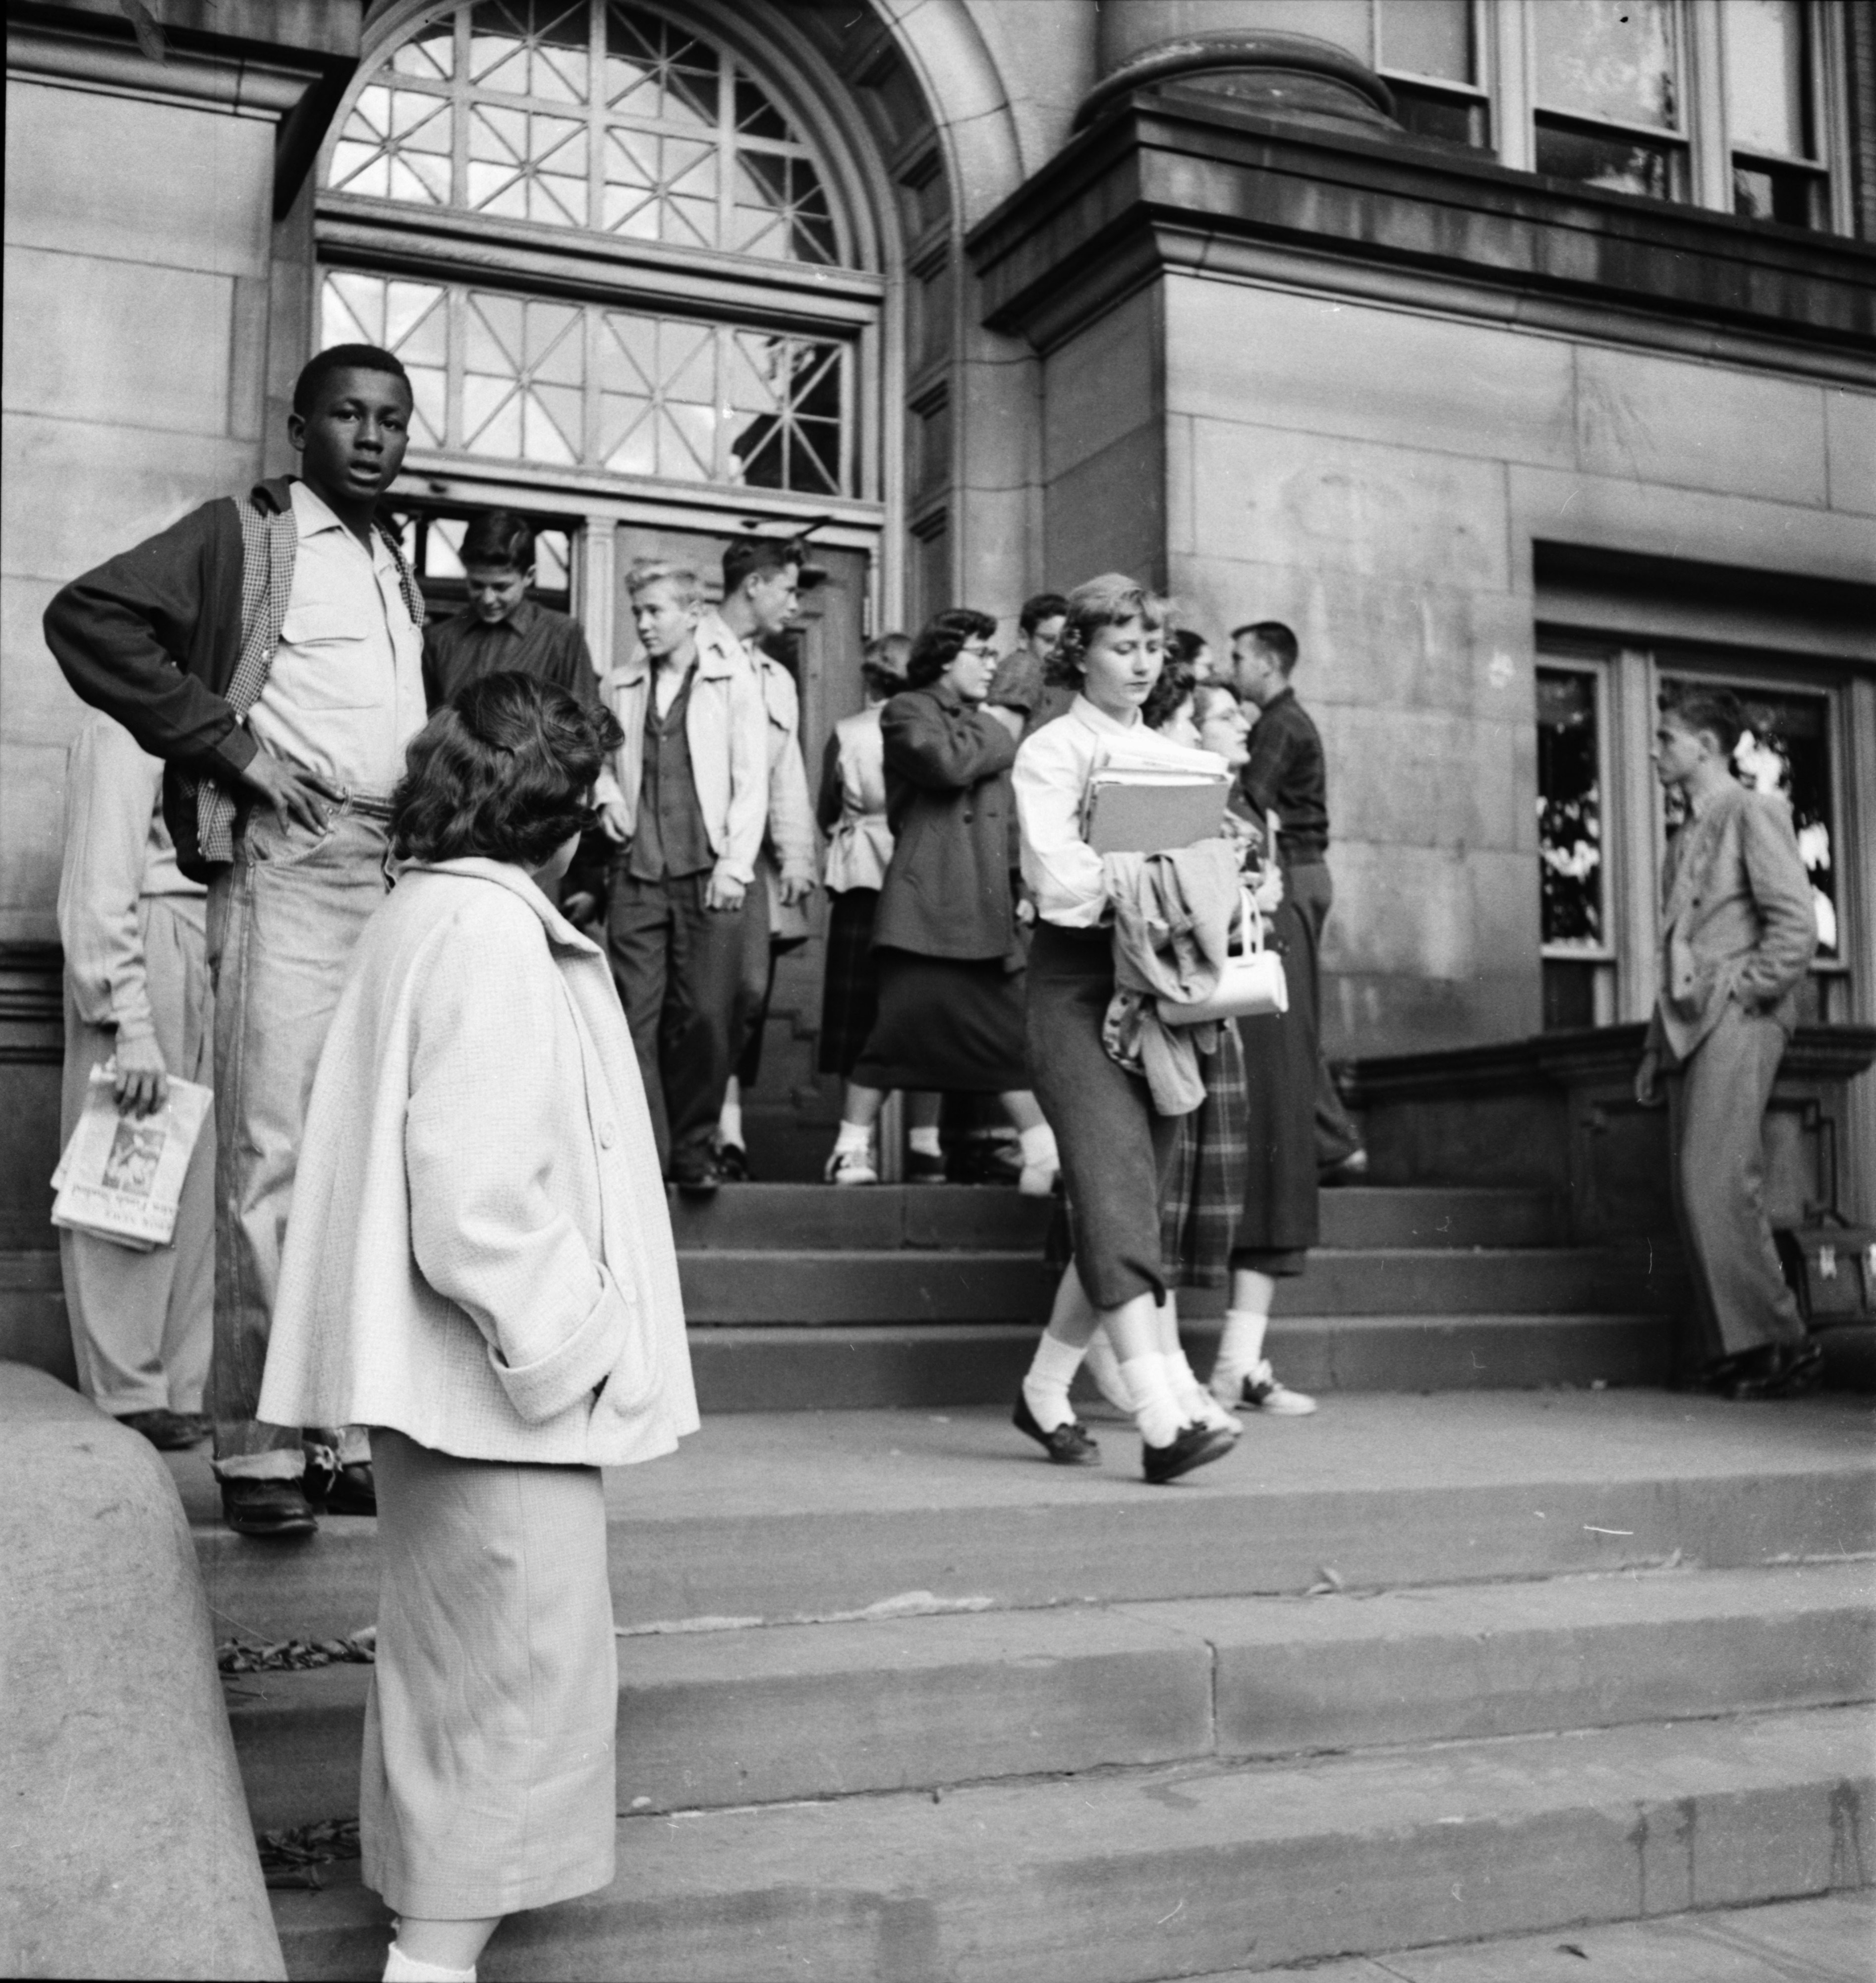 Students on the Steps of Ann Arbor High School, September 1952 image